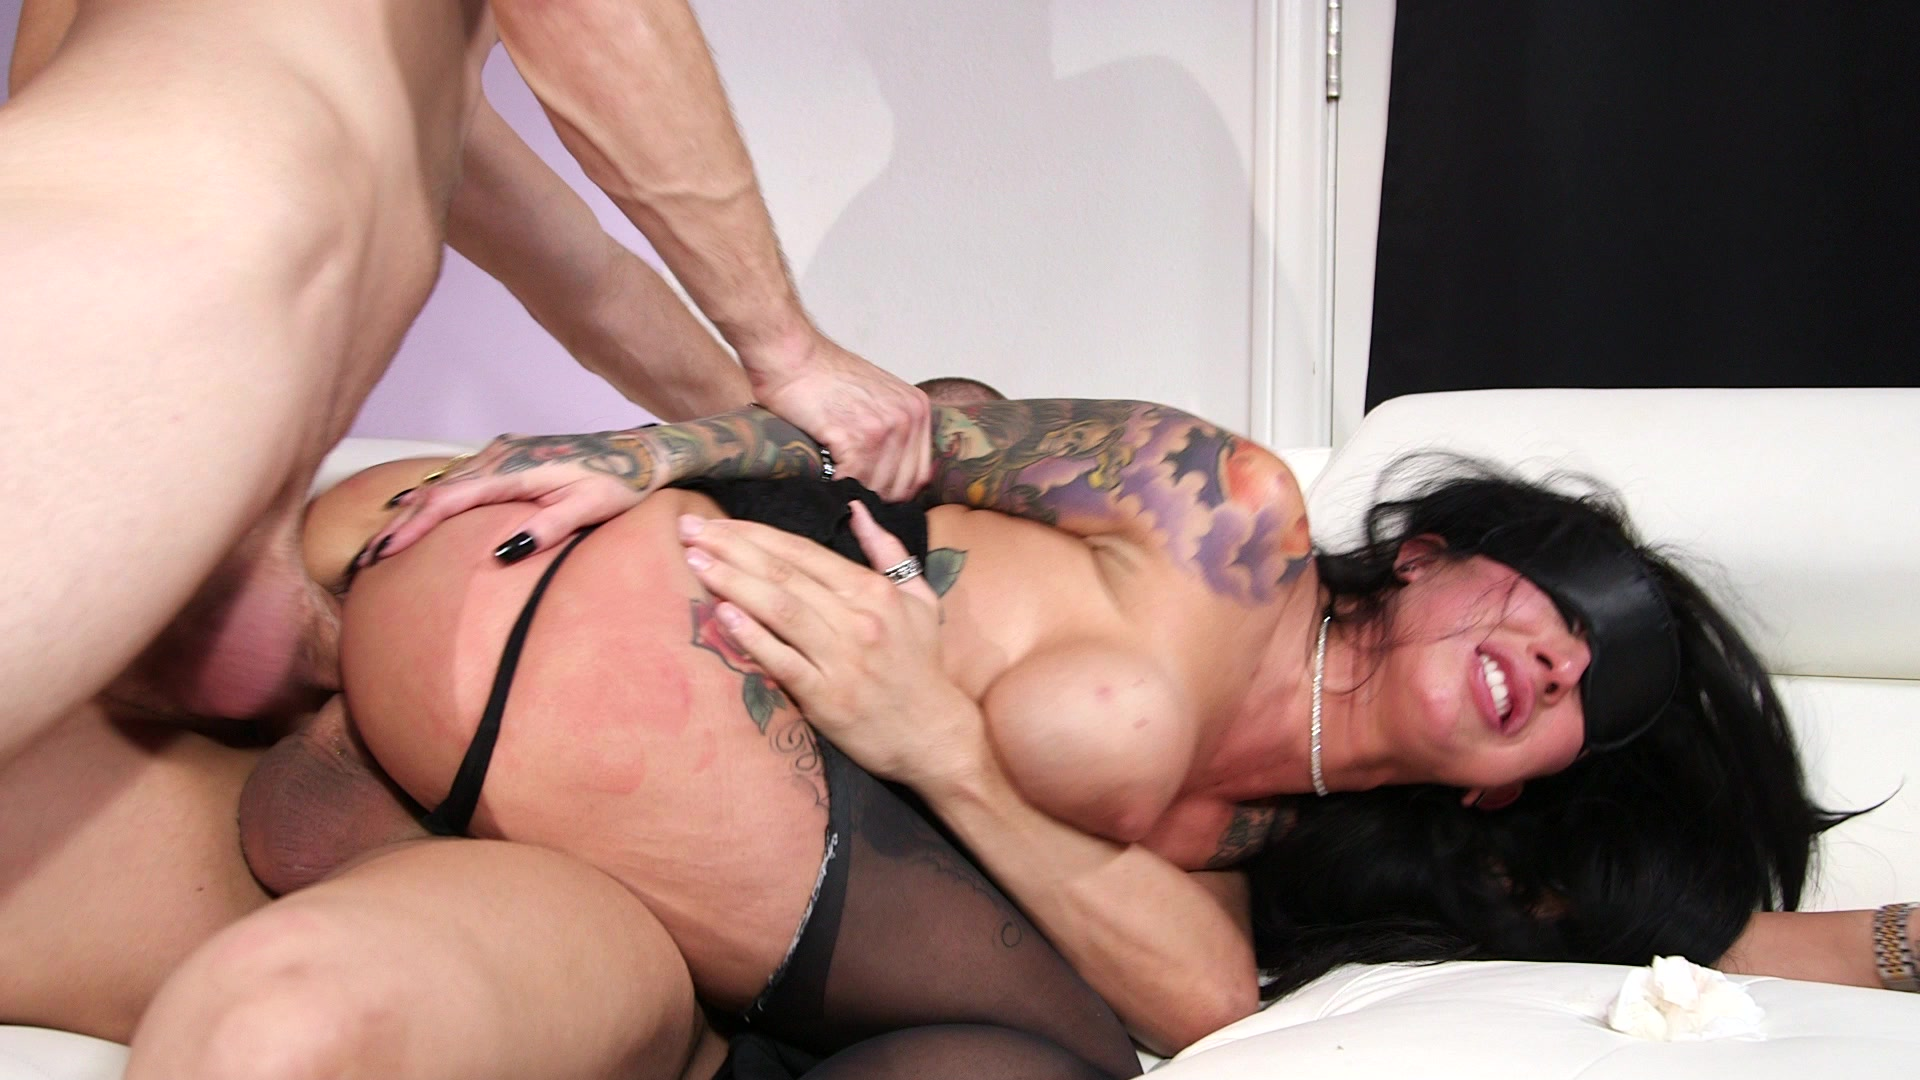 Big Tit Whores Get Double Penetrated (2016) – #Latest #Sexofilm